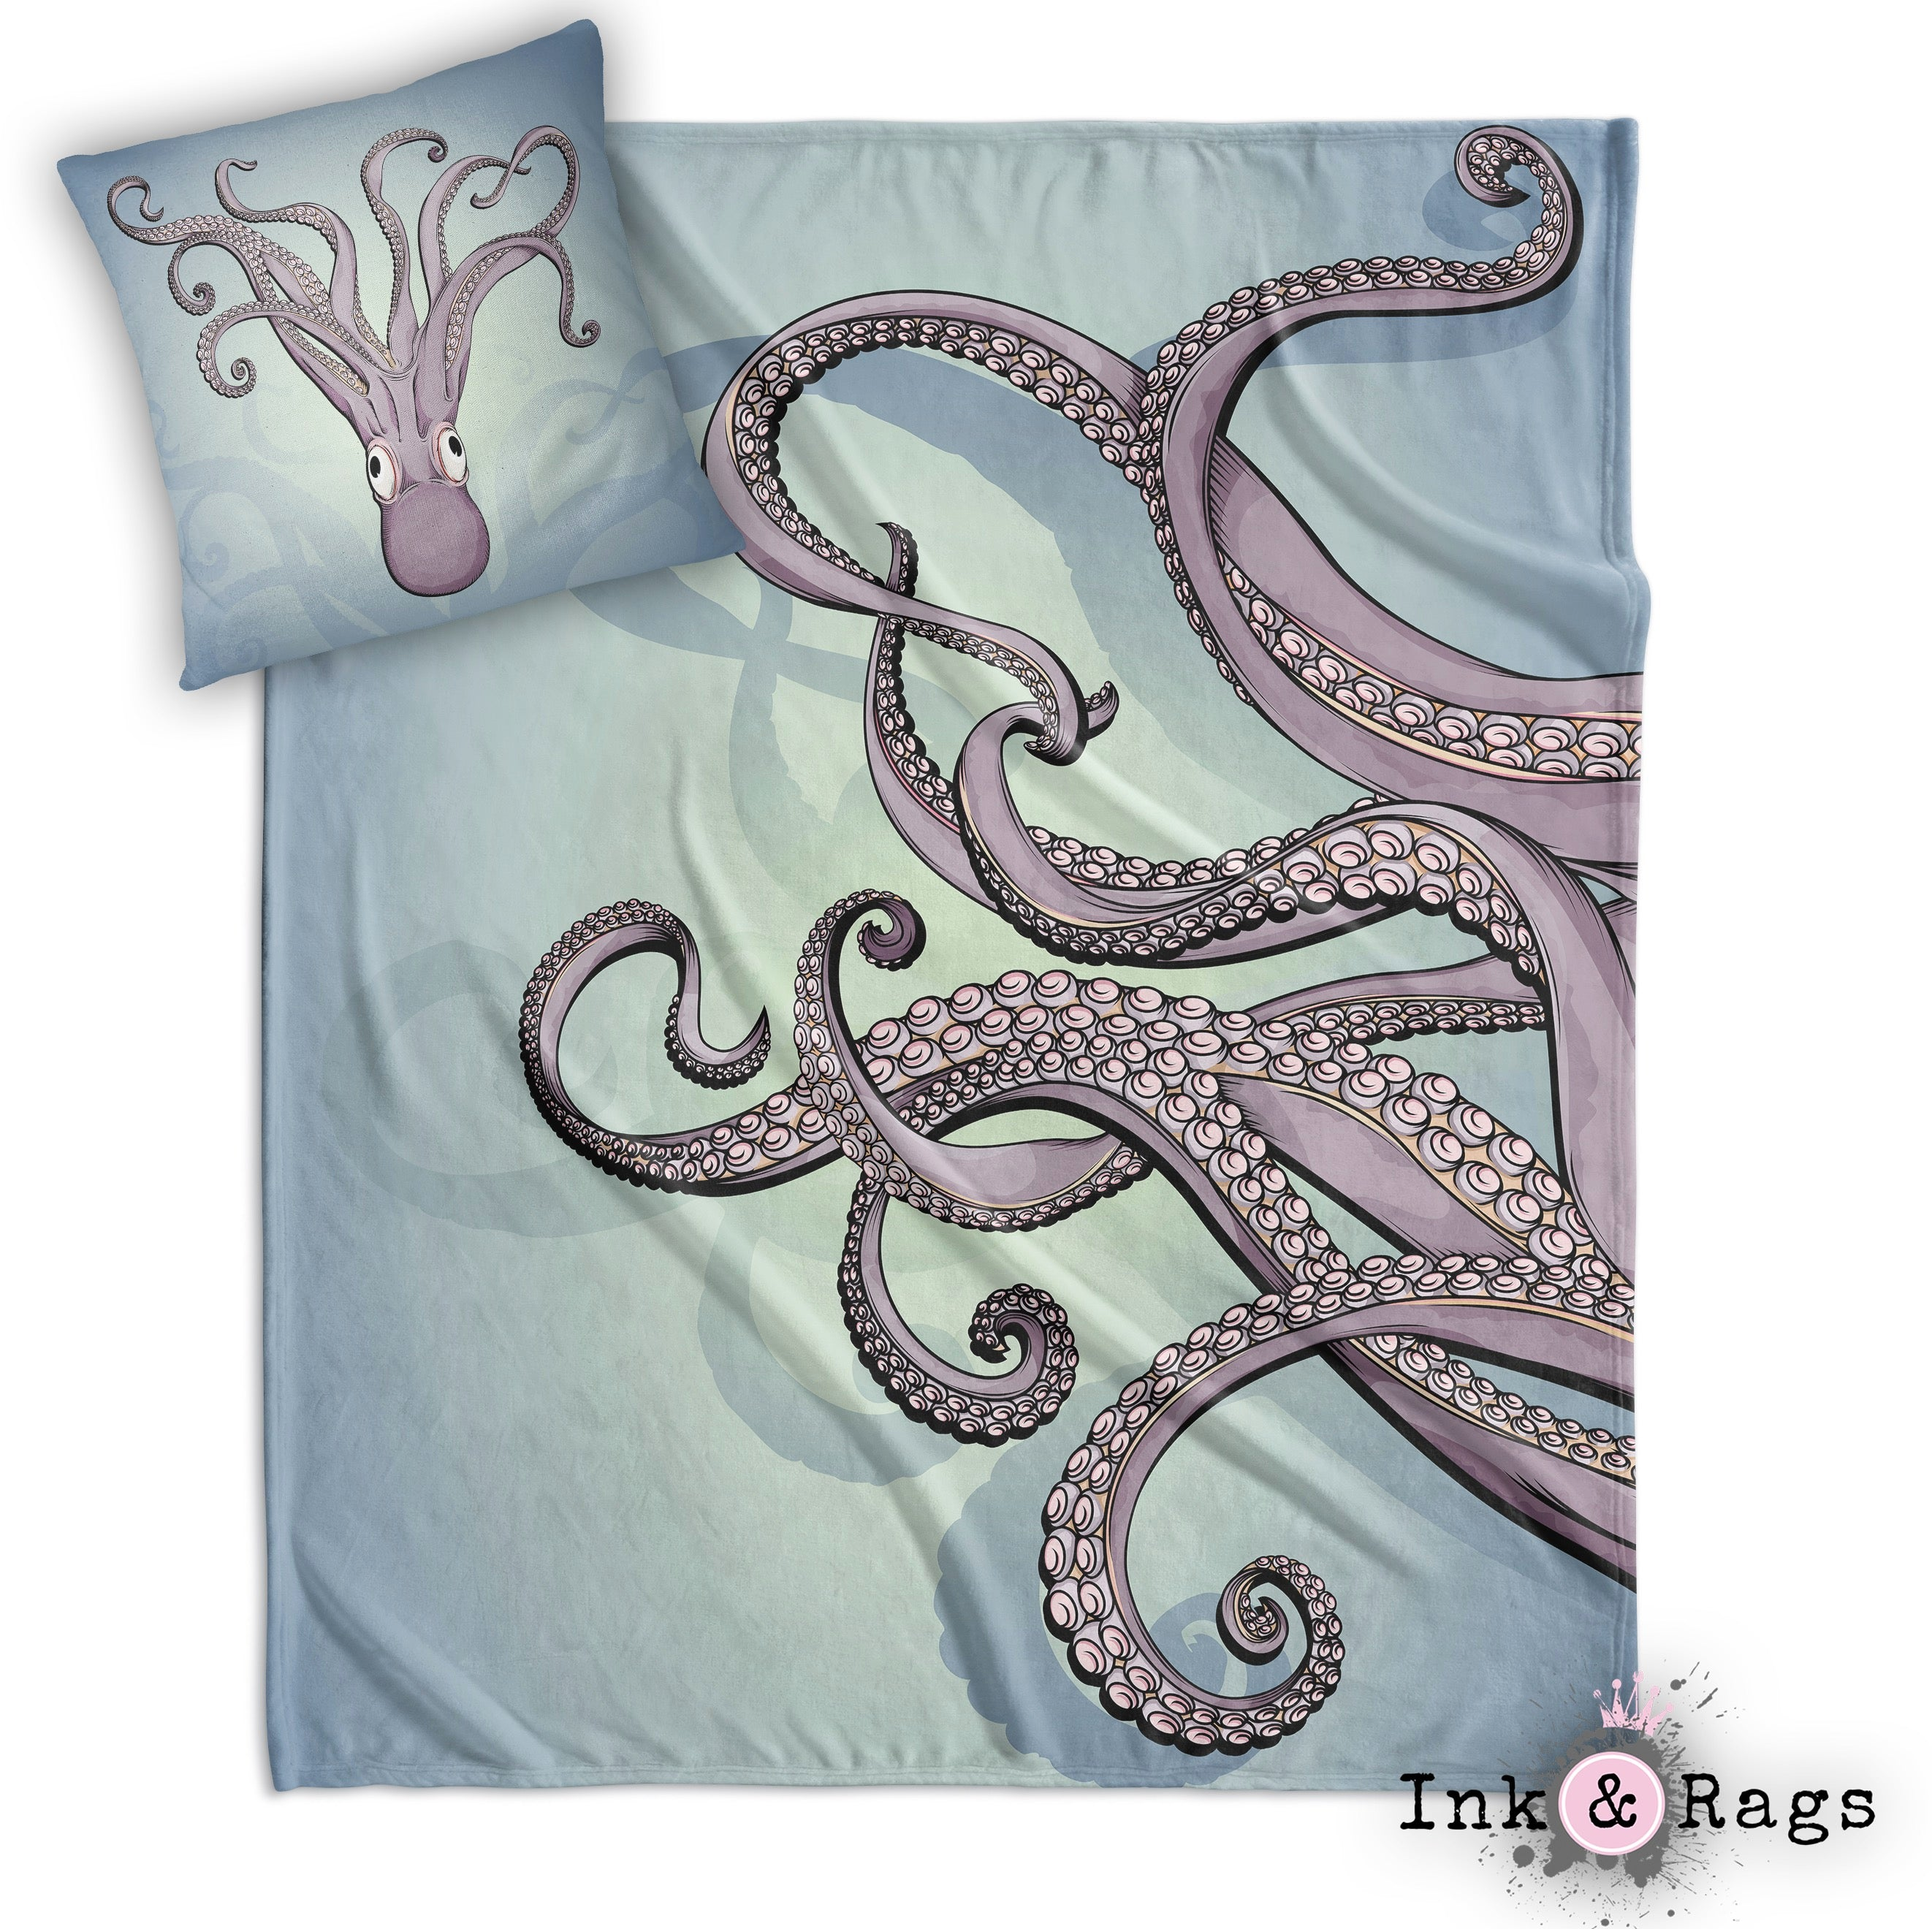 Purple Tentacle and Full Octopus Decorative Throw and Pillow Set  sc 1 st  Ink u0026 Rags & Purple Tentacle and Full Octopus Decorative Throw and Pillow Set ...